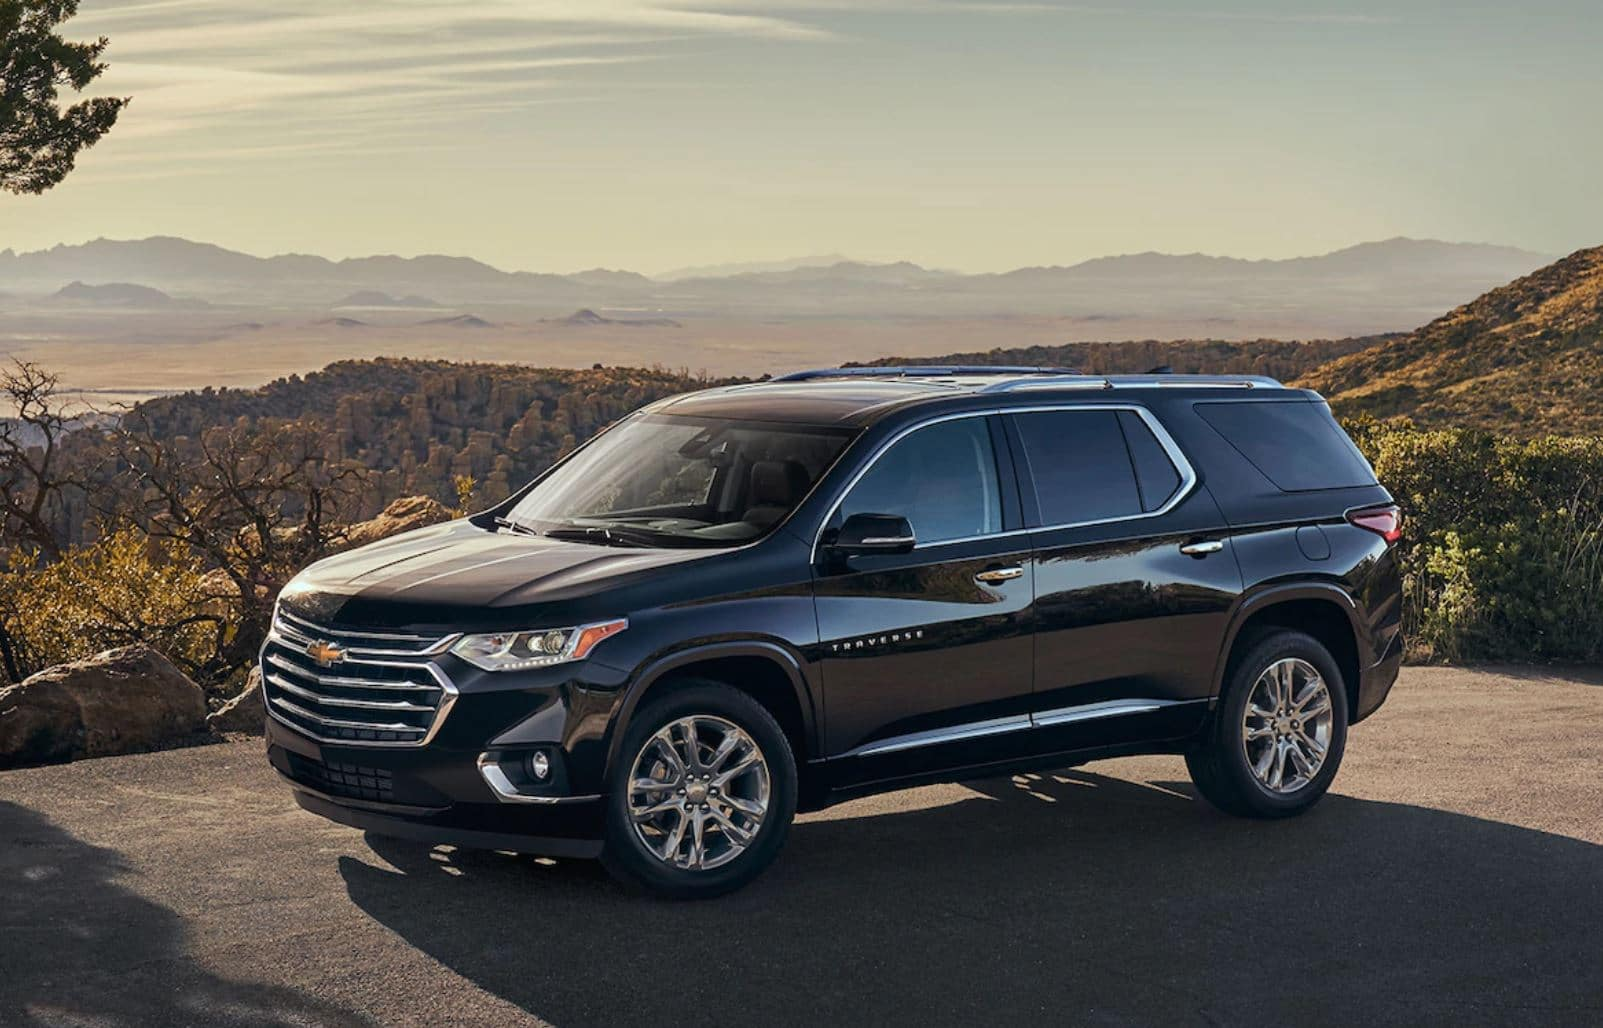 2019 Chevrolet Traverse Performance Features Ron Westphal Chevrolet Naperville, IL